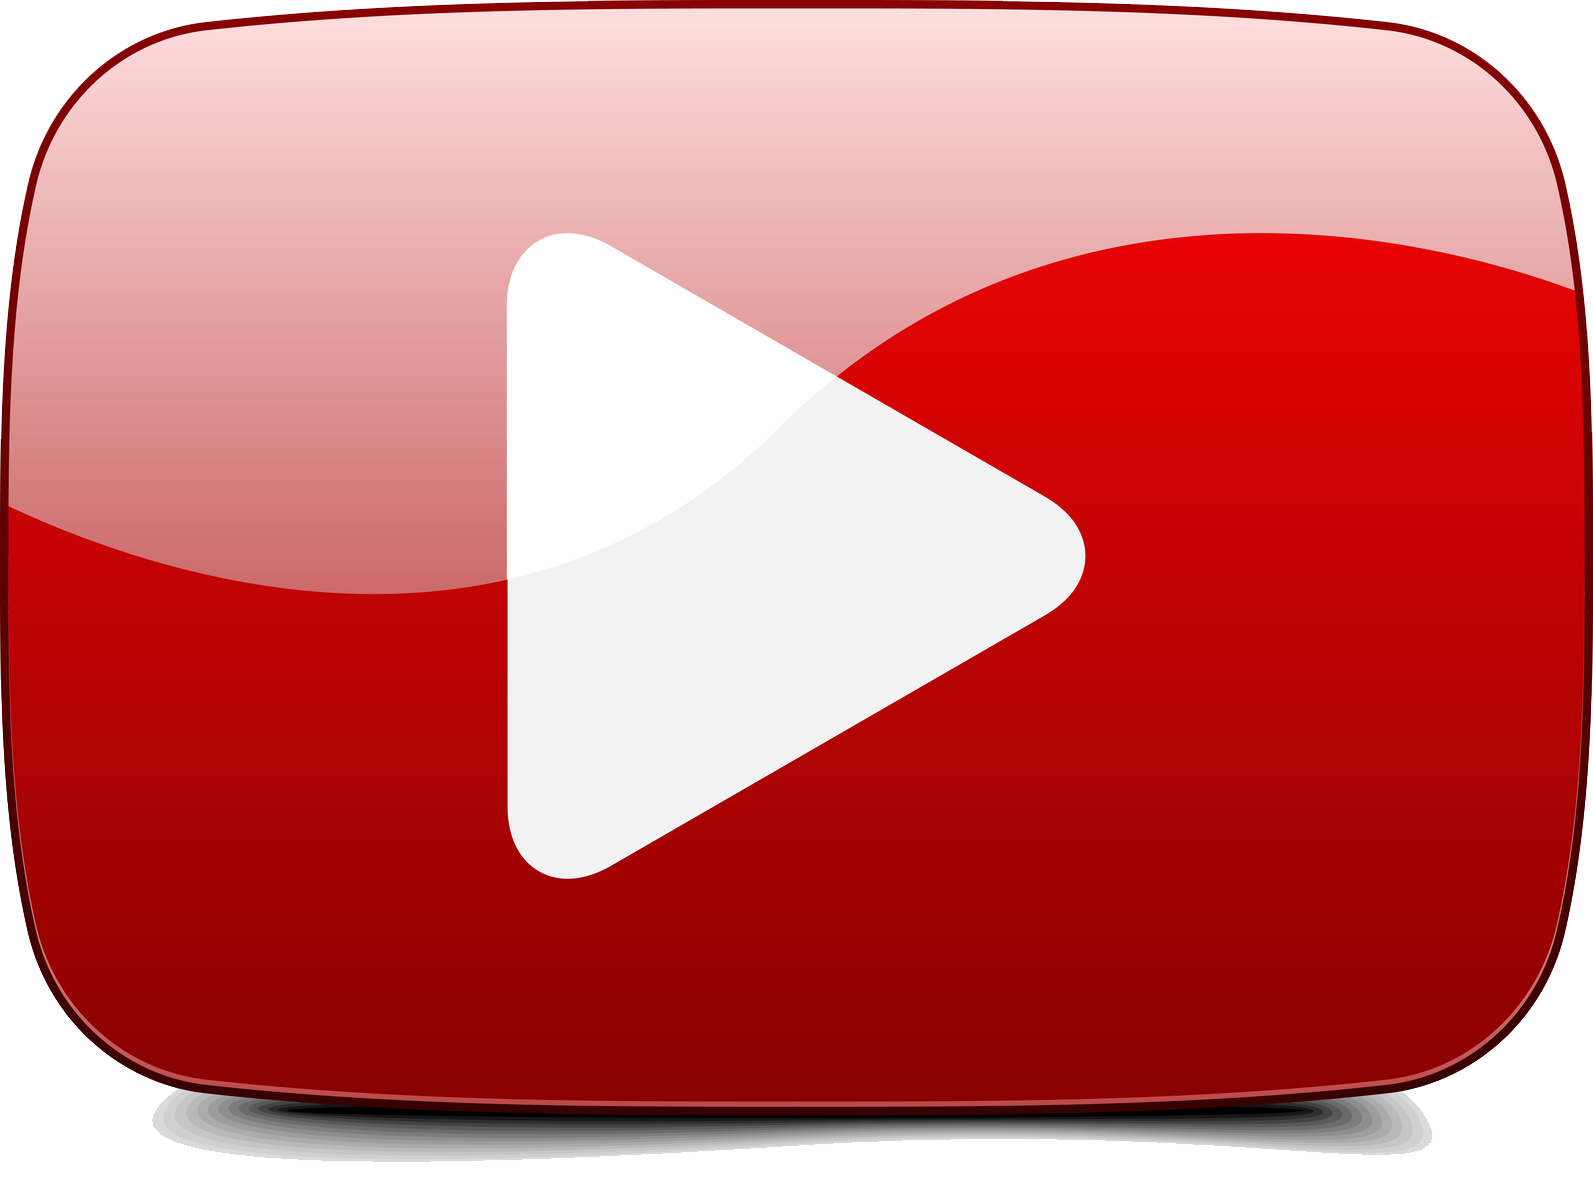 Red play button png. Photos mart